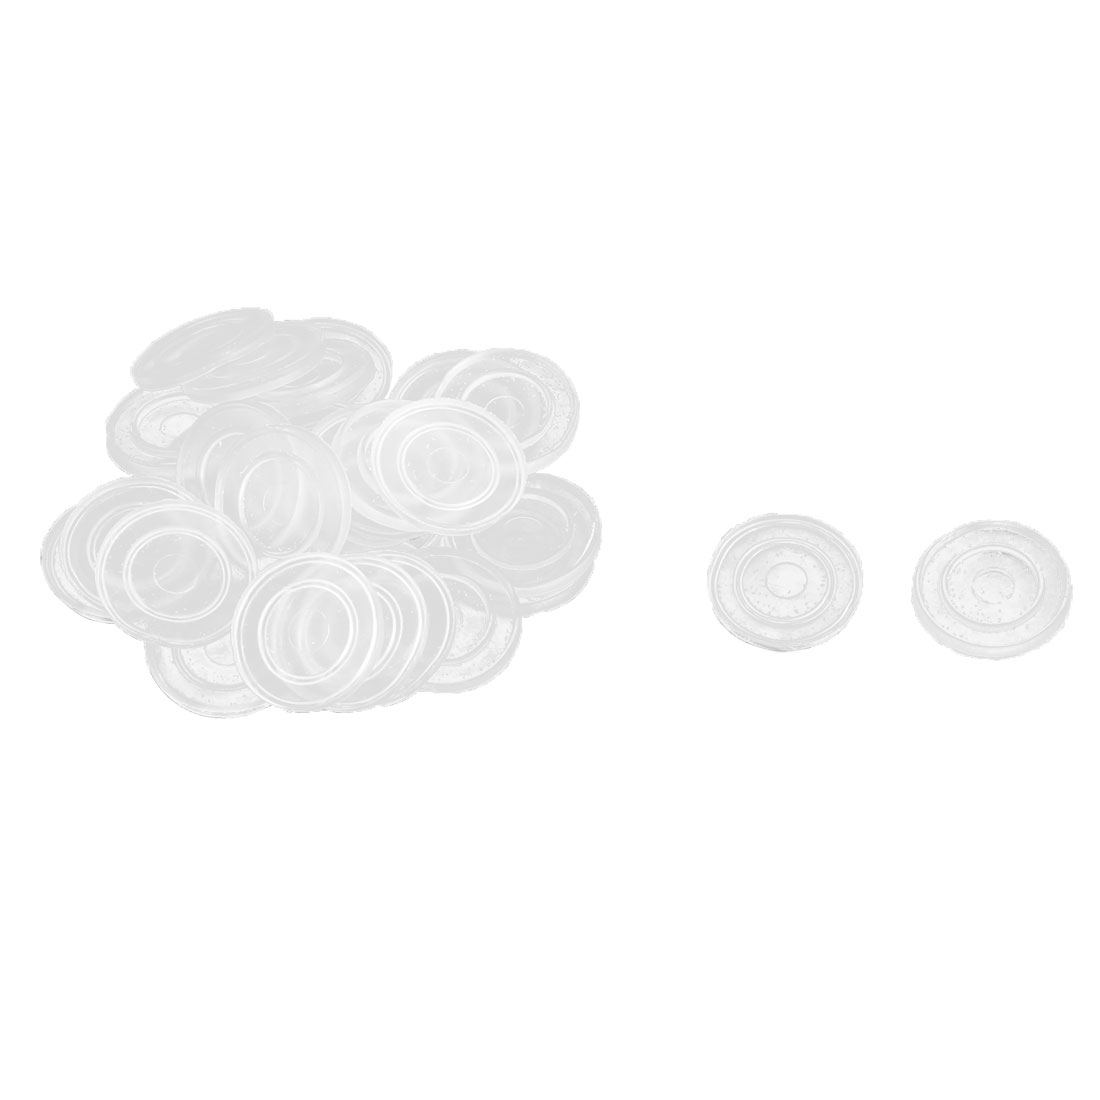 Household Furniture Rubber Round Glass Table Non Slip Dash Mat Pad Clear 30pcs